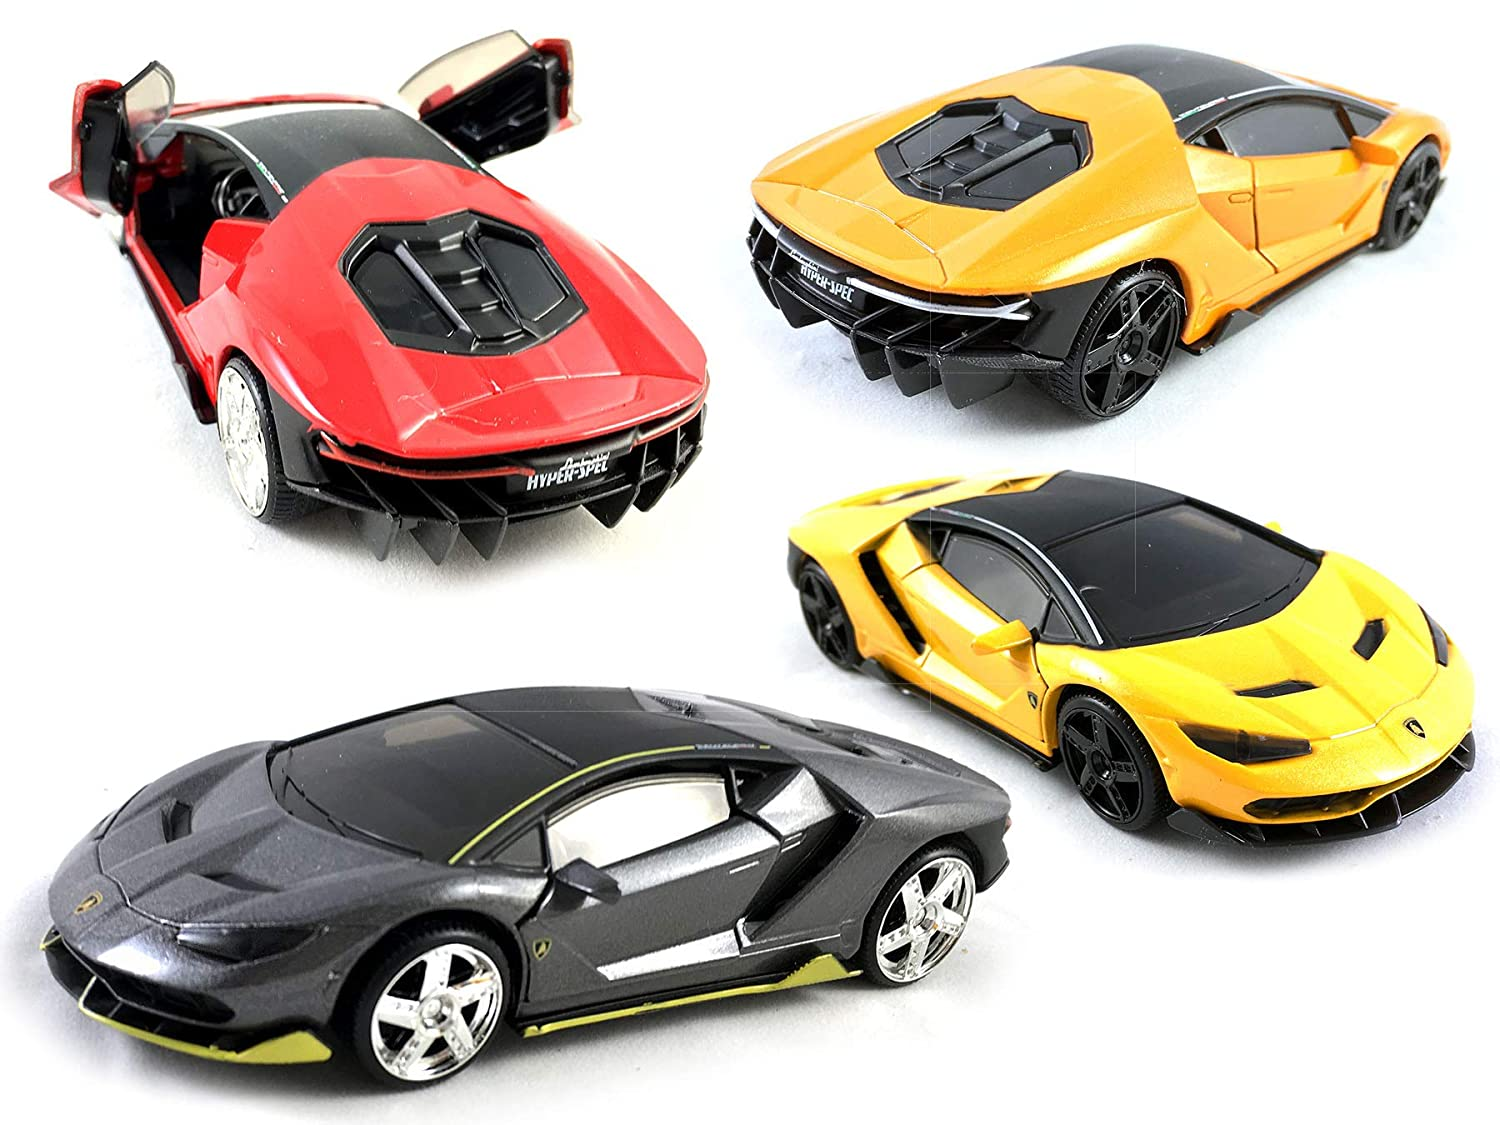 HCK Set of 4 2017 Lambo Centenario , Pull Back Toy Cars 132 Scale (Red,  Black, Orange, Yellow)